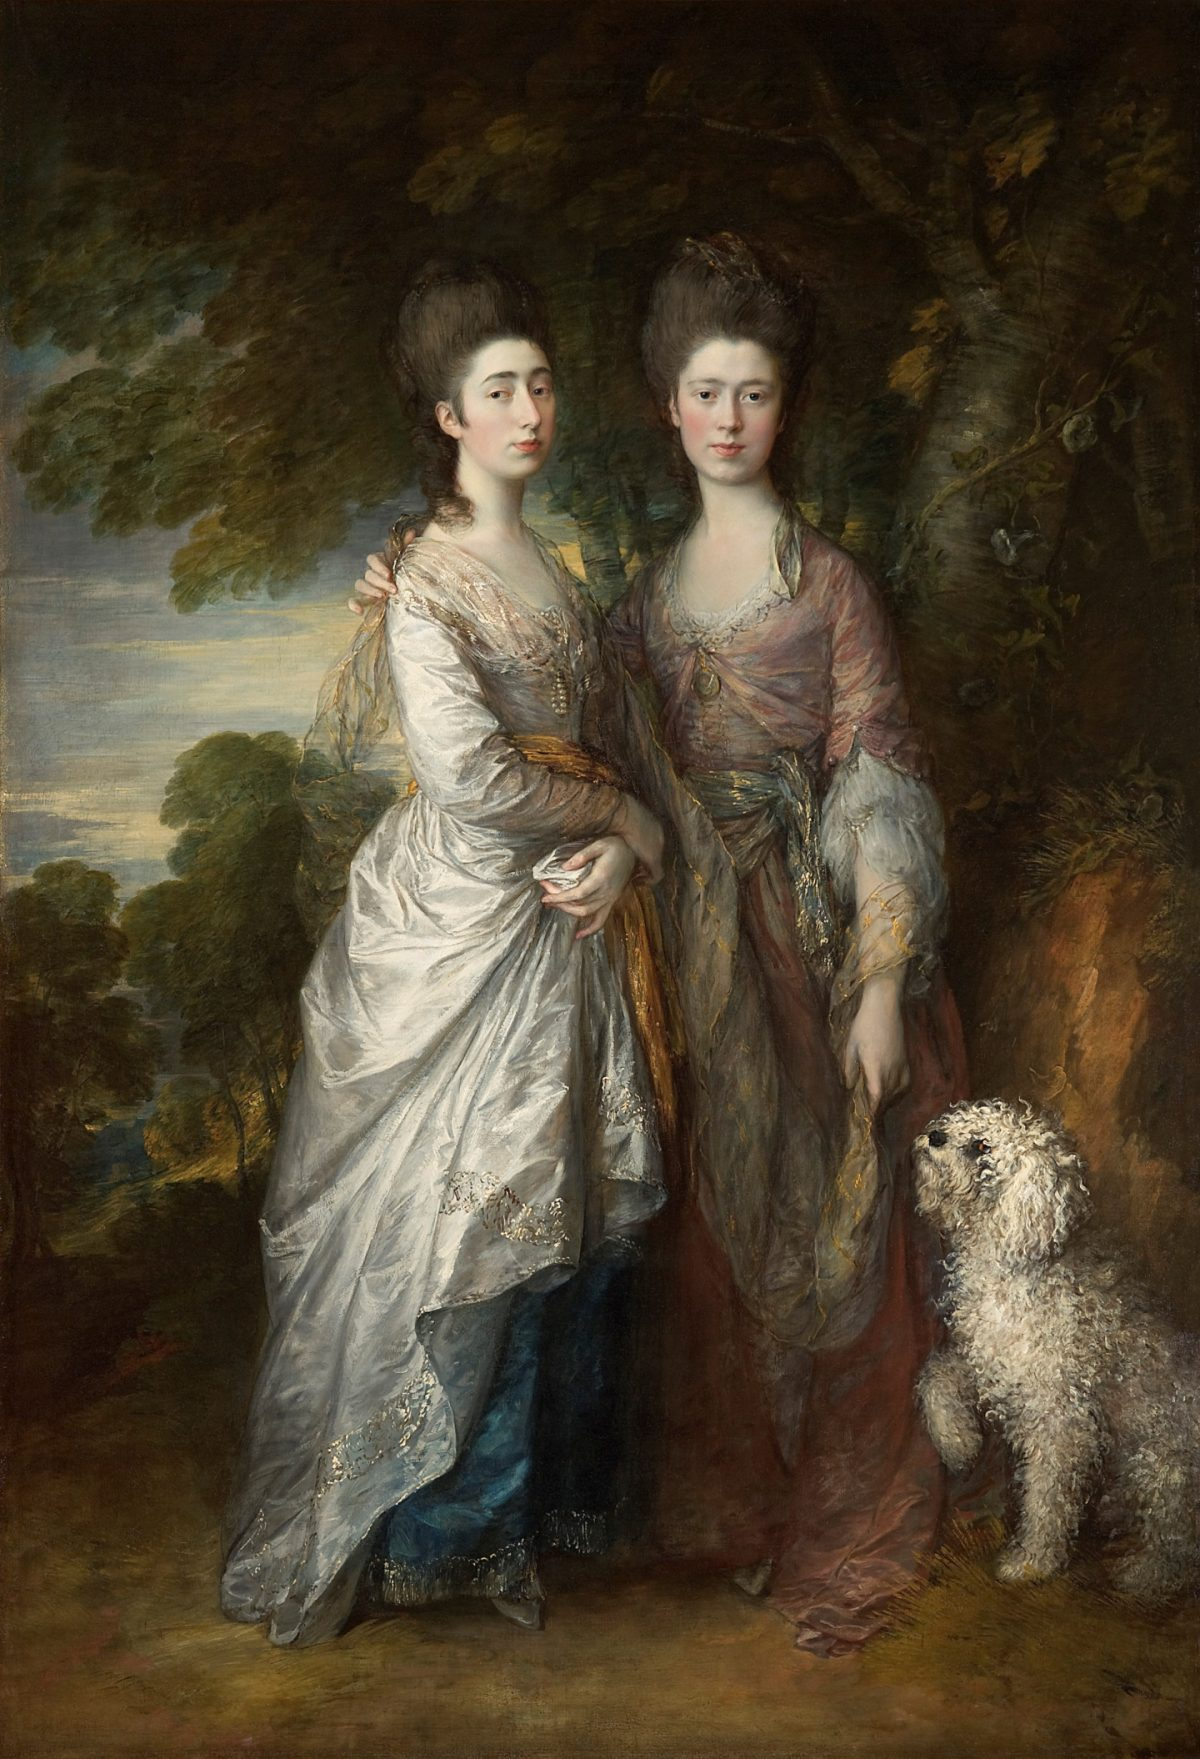 Two 18th century young women and a dog